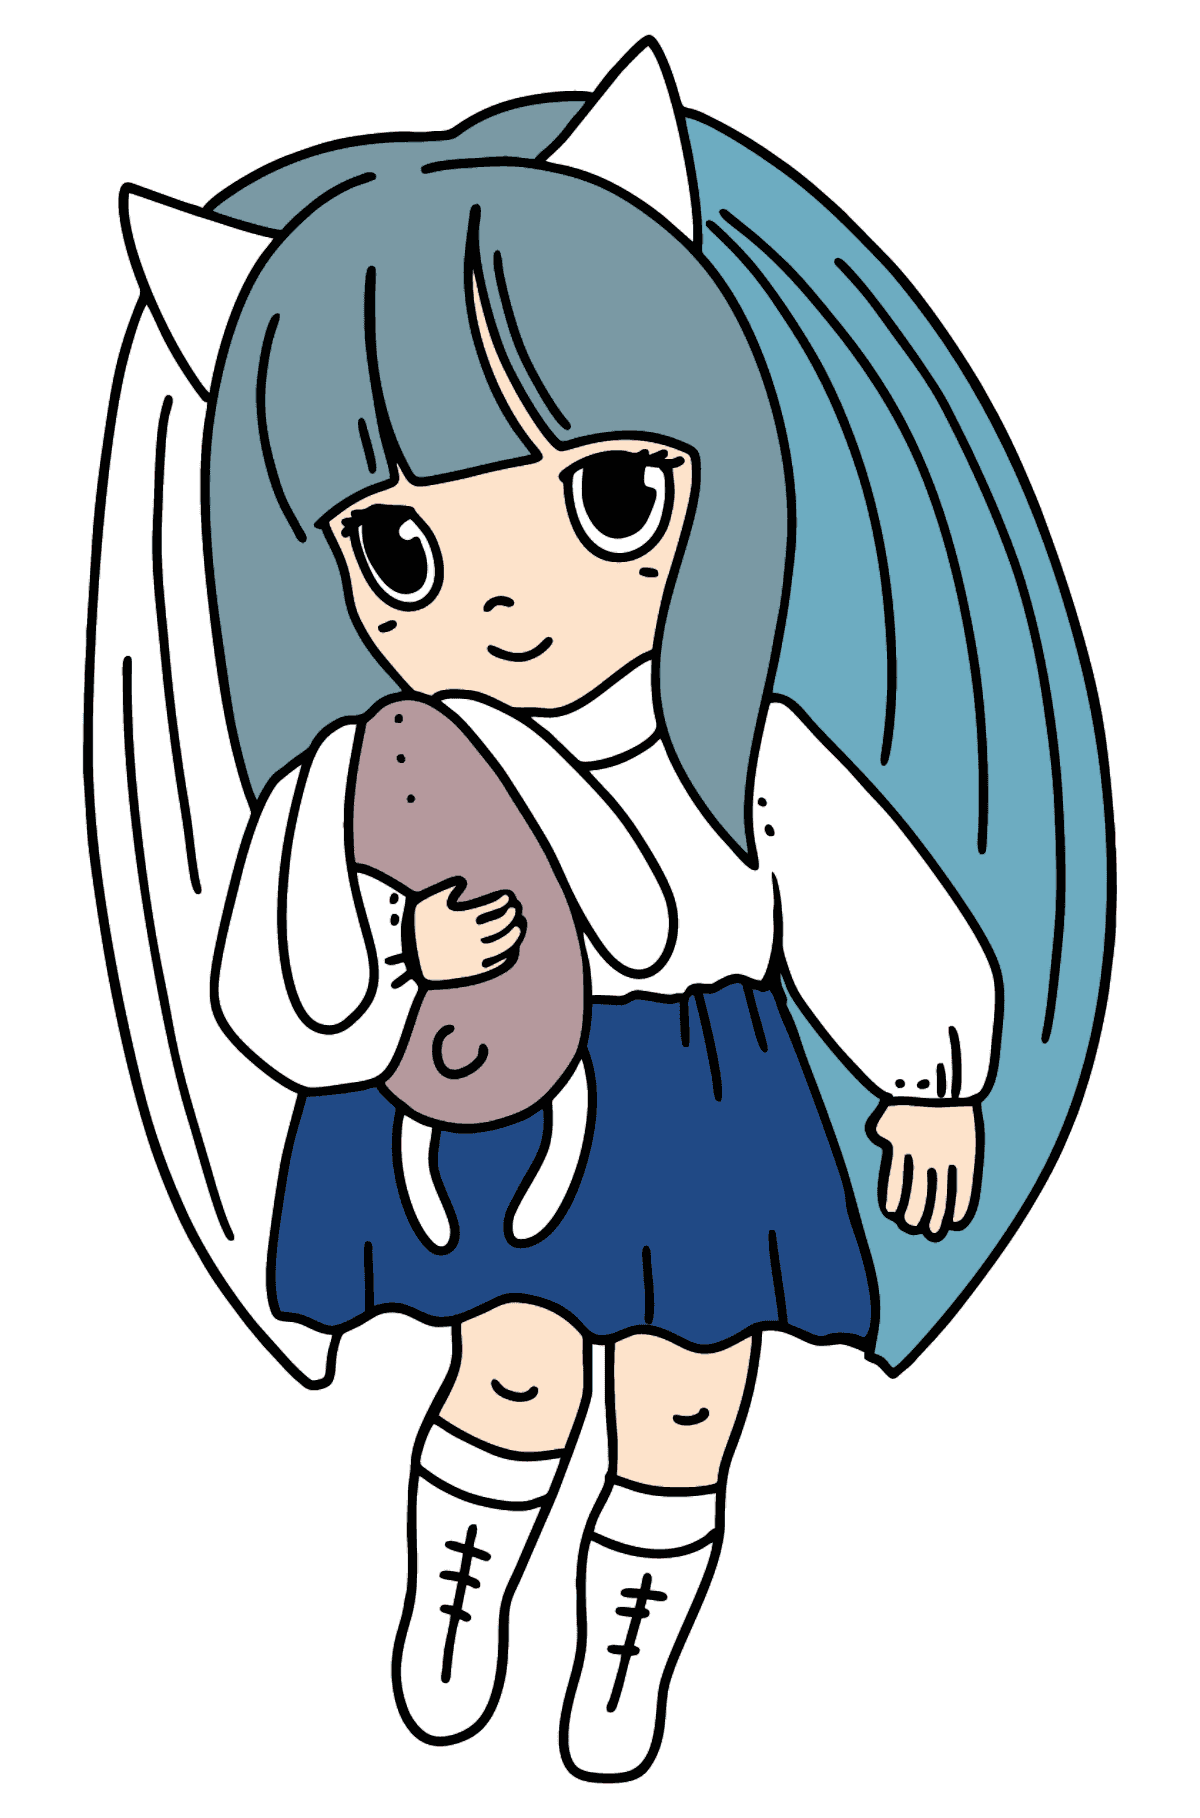 Anime Little Girl Coloring Pages - Coloring Pages for Kids